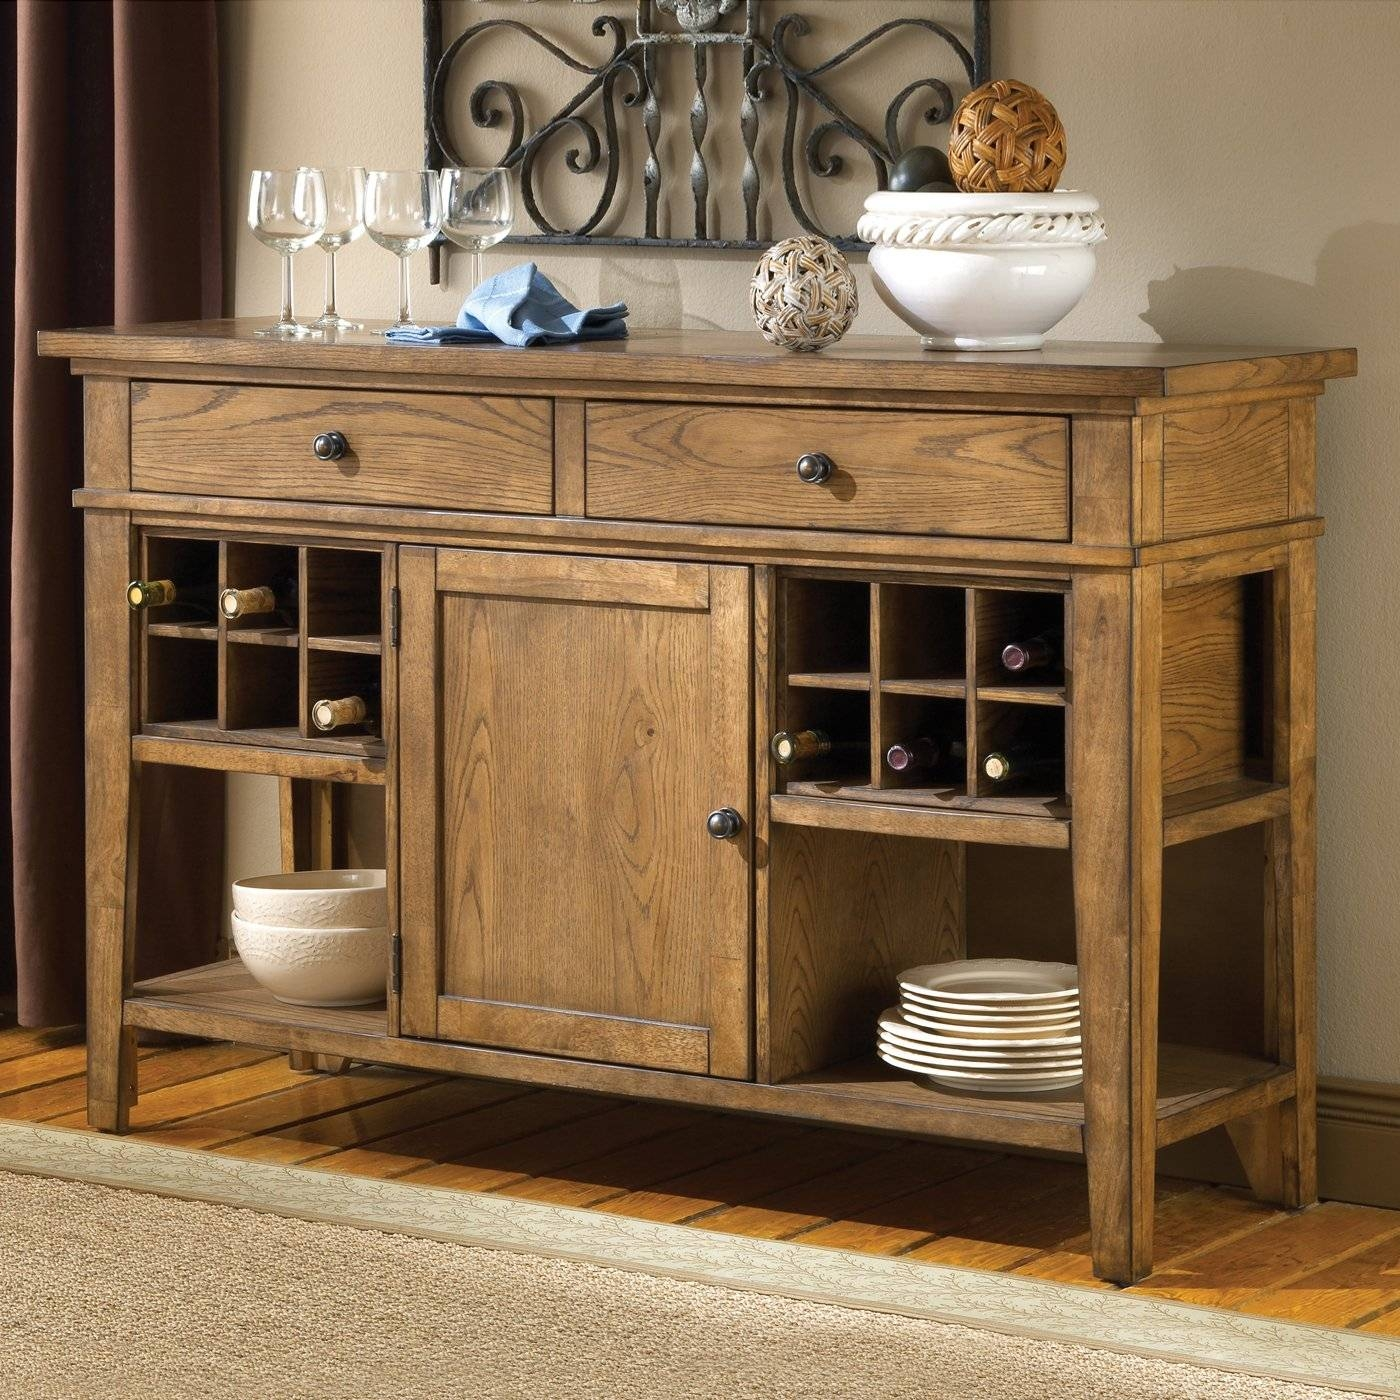 Sideboards. Glamorous Sideboard With Wine Storage: Sideboard-With within Sideboards With Wine Racks (Image 24 of 30)